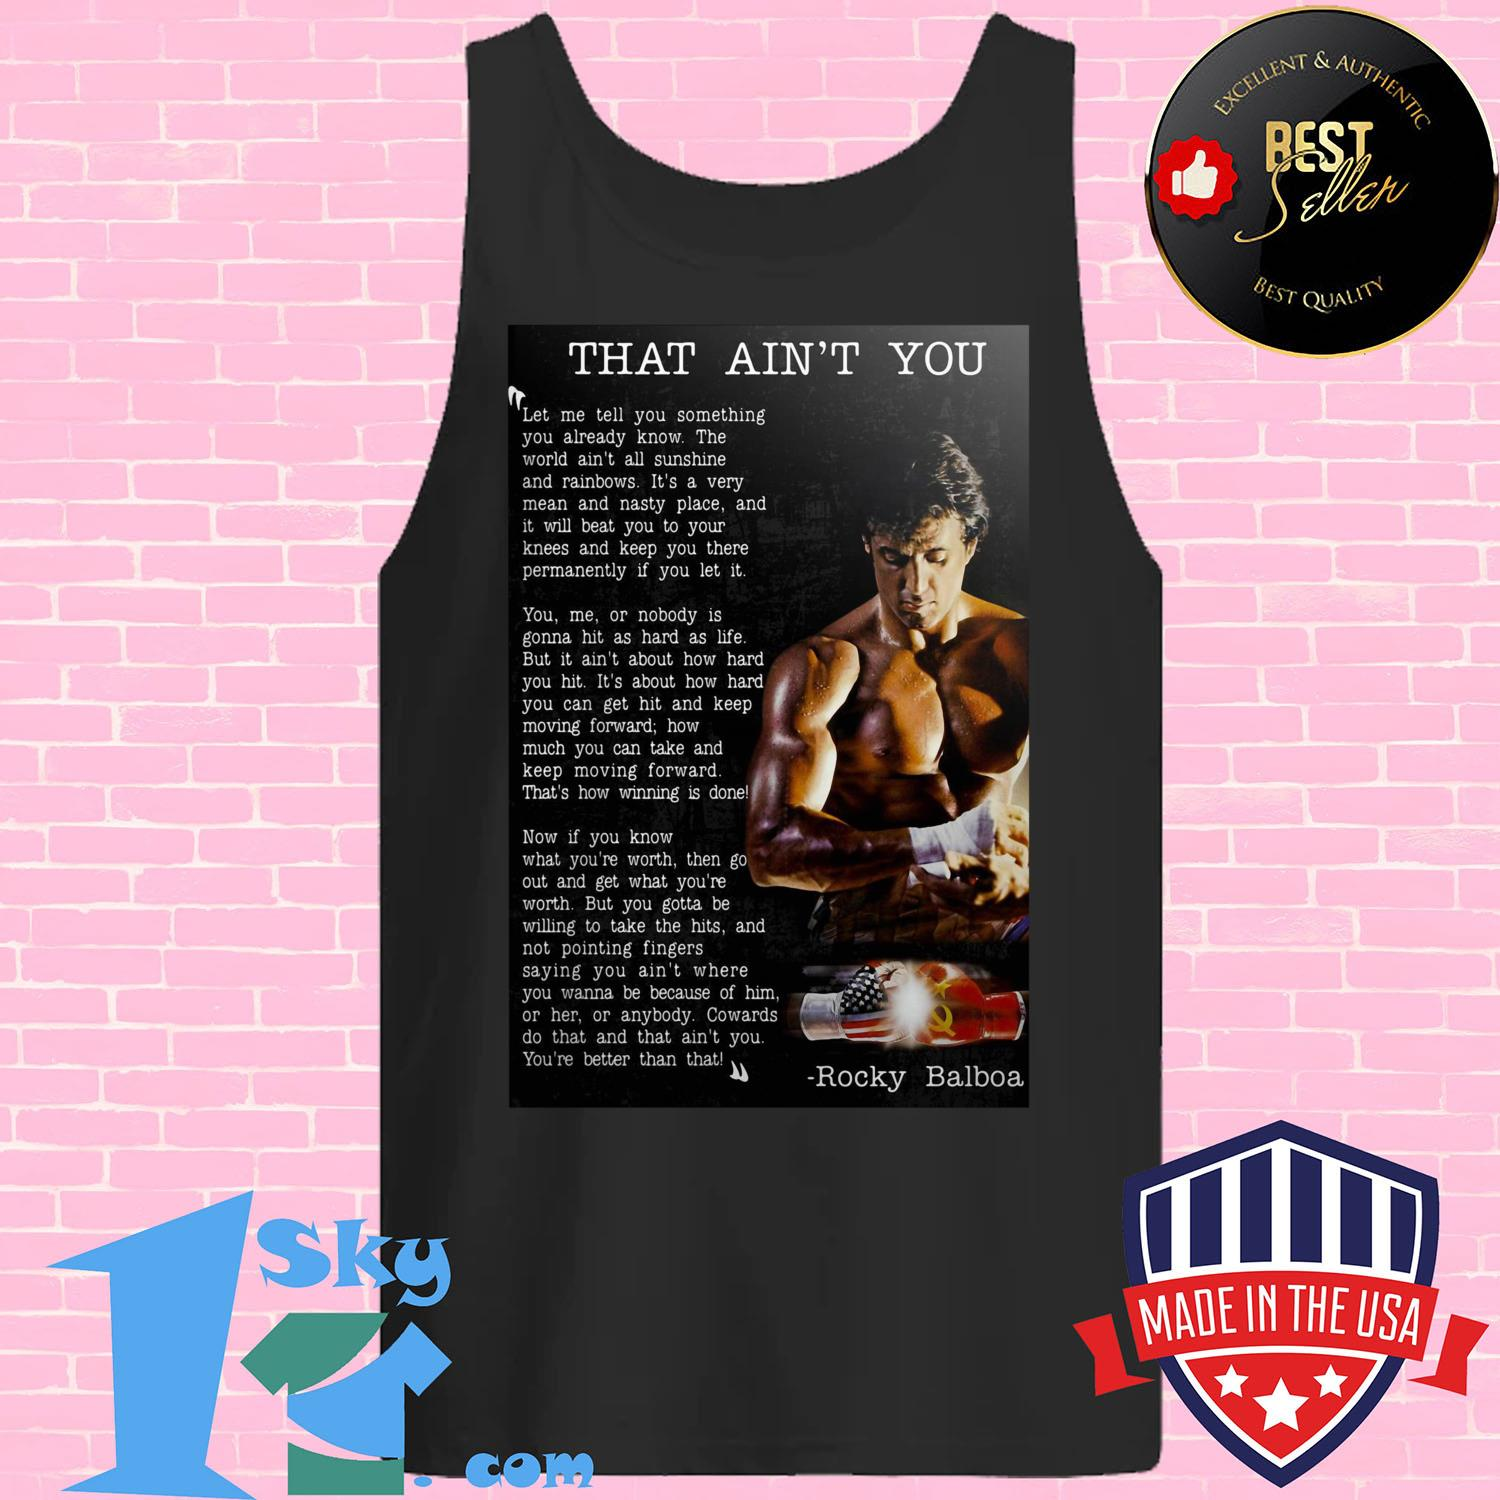 that aint you let me tell you something you already know tank top - That Ain't You Let Me Tell You Something You Already Know shirt